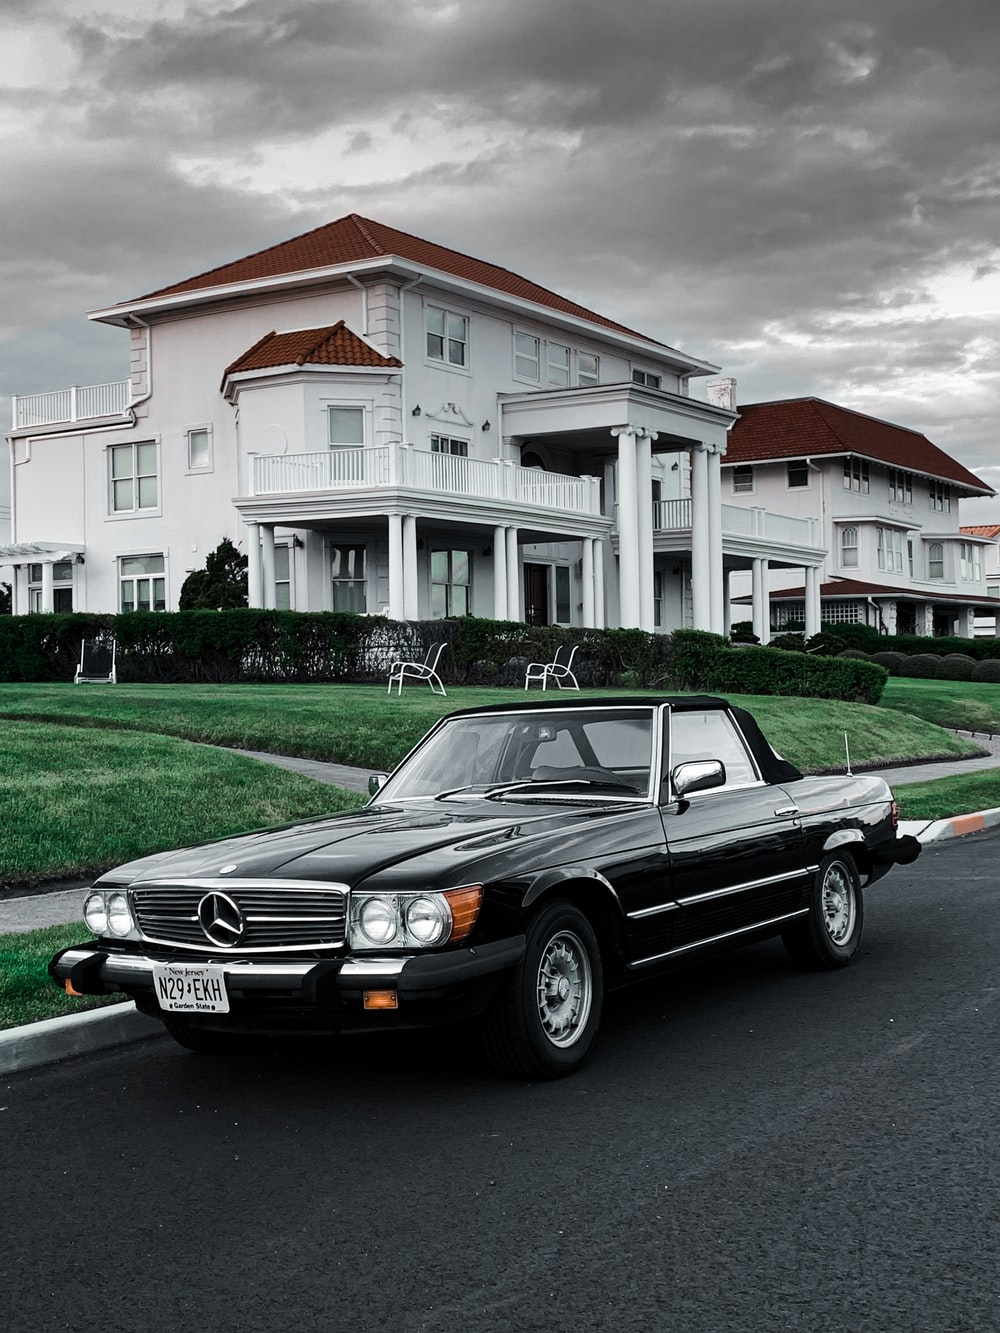 black mercedes benz car parked in front of white and brown house